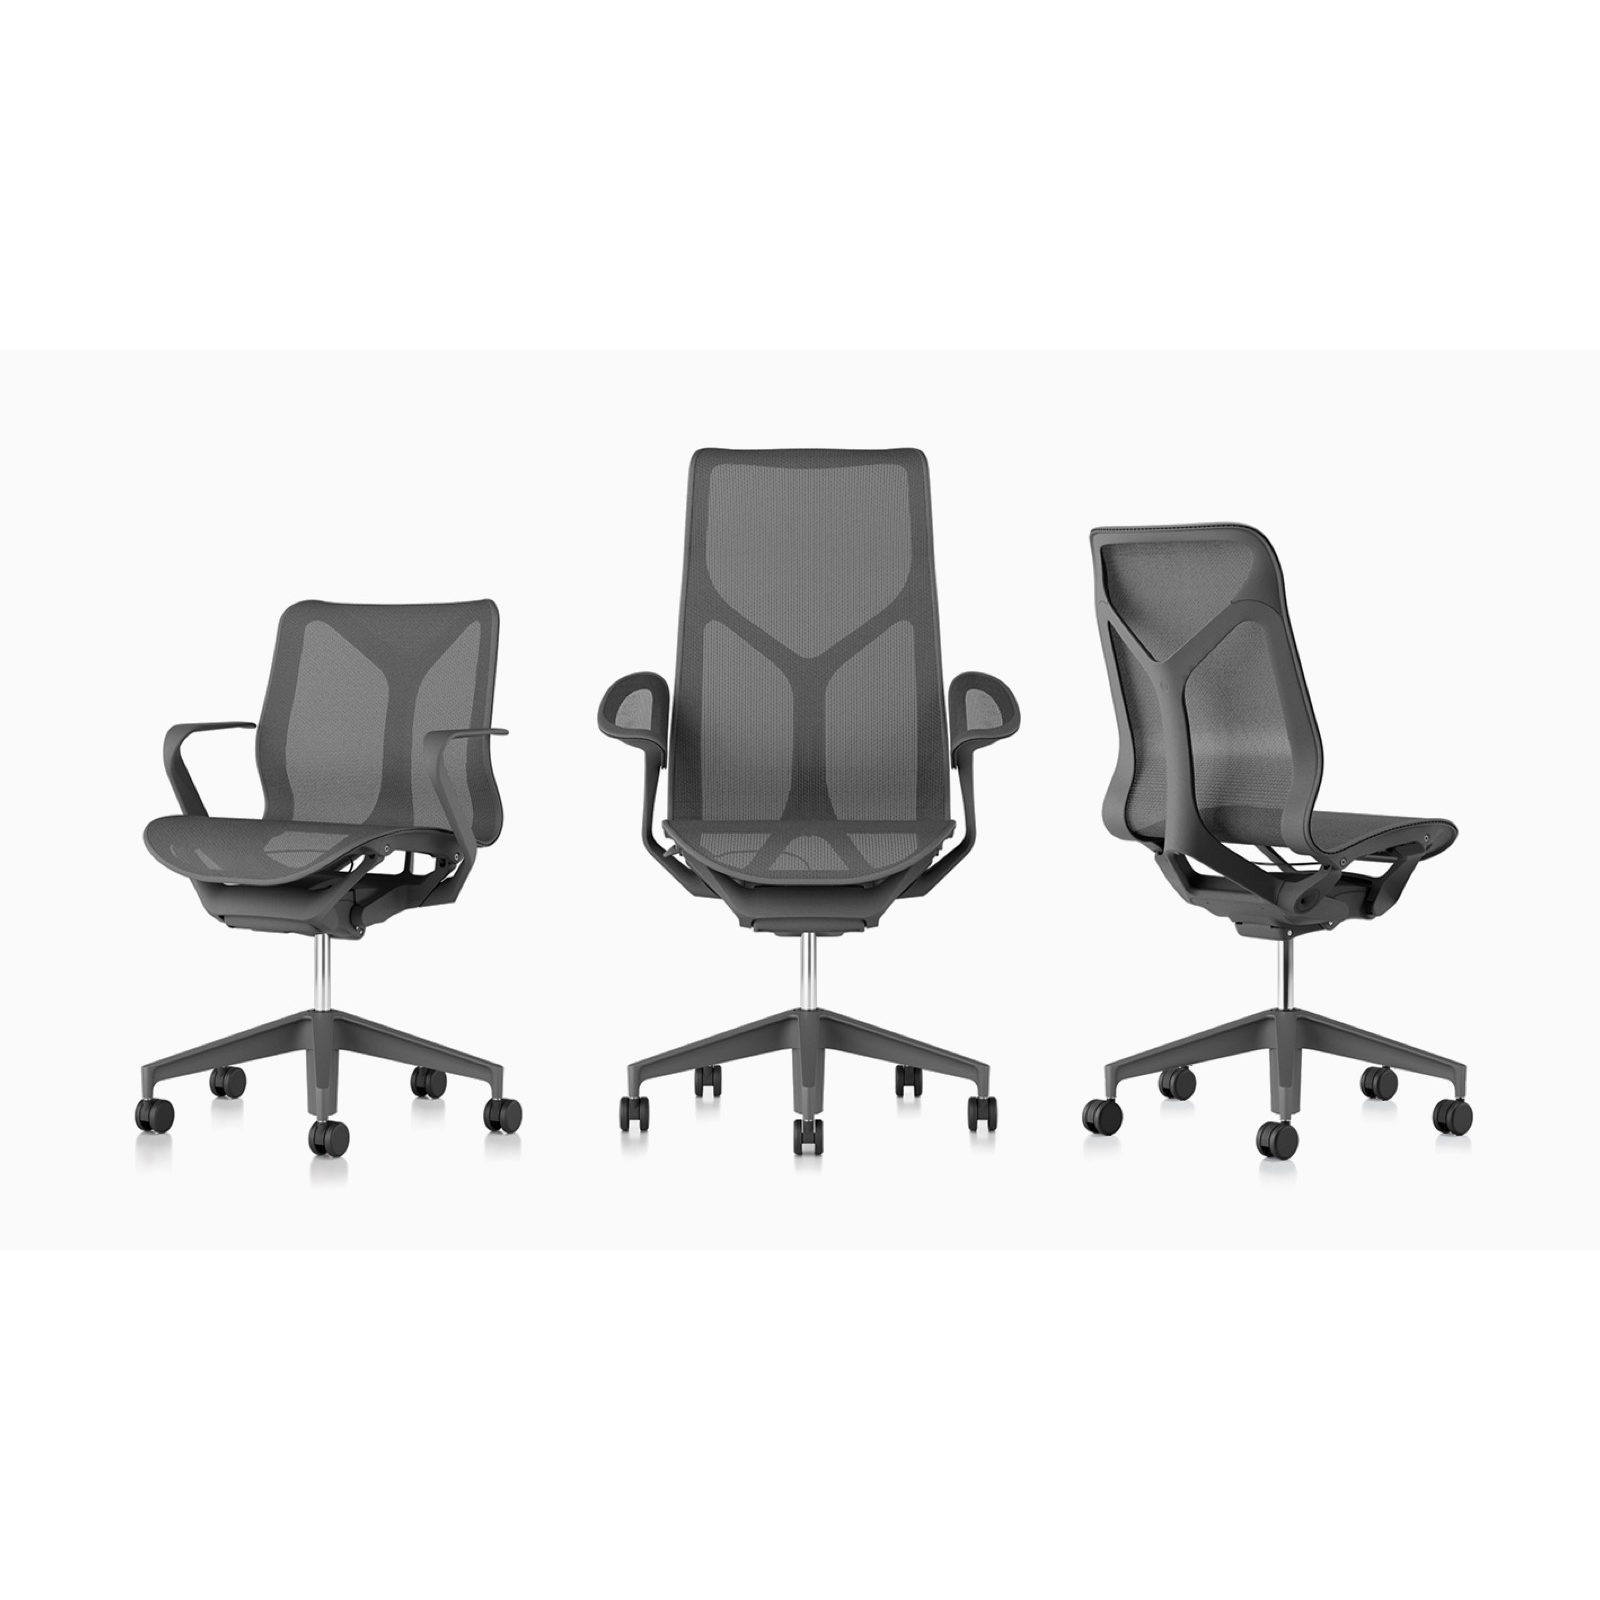 Cosm chairs carbon